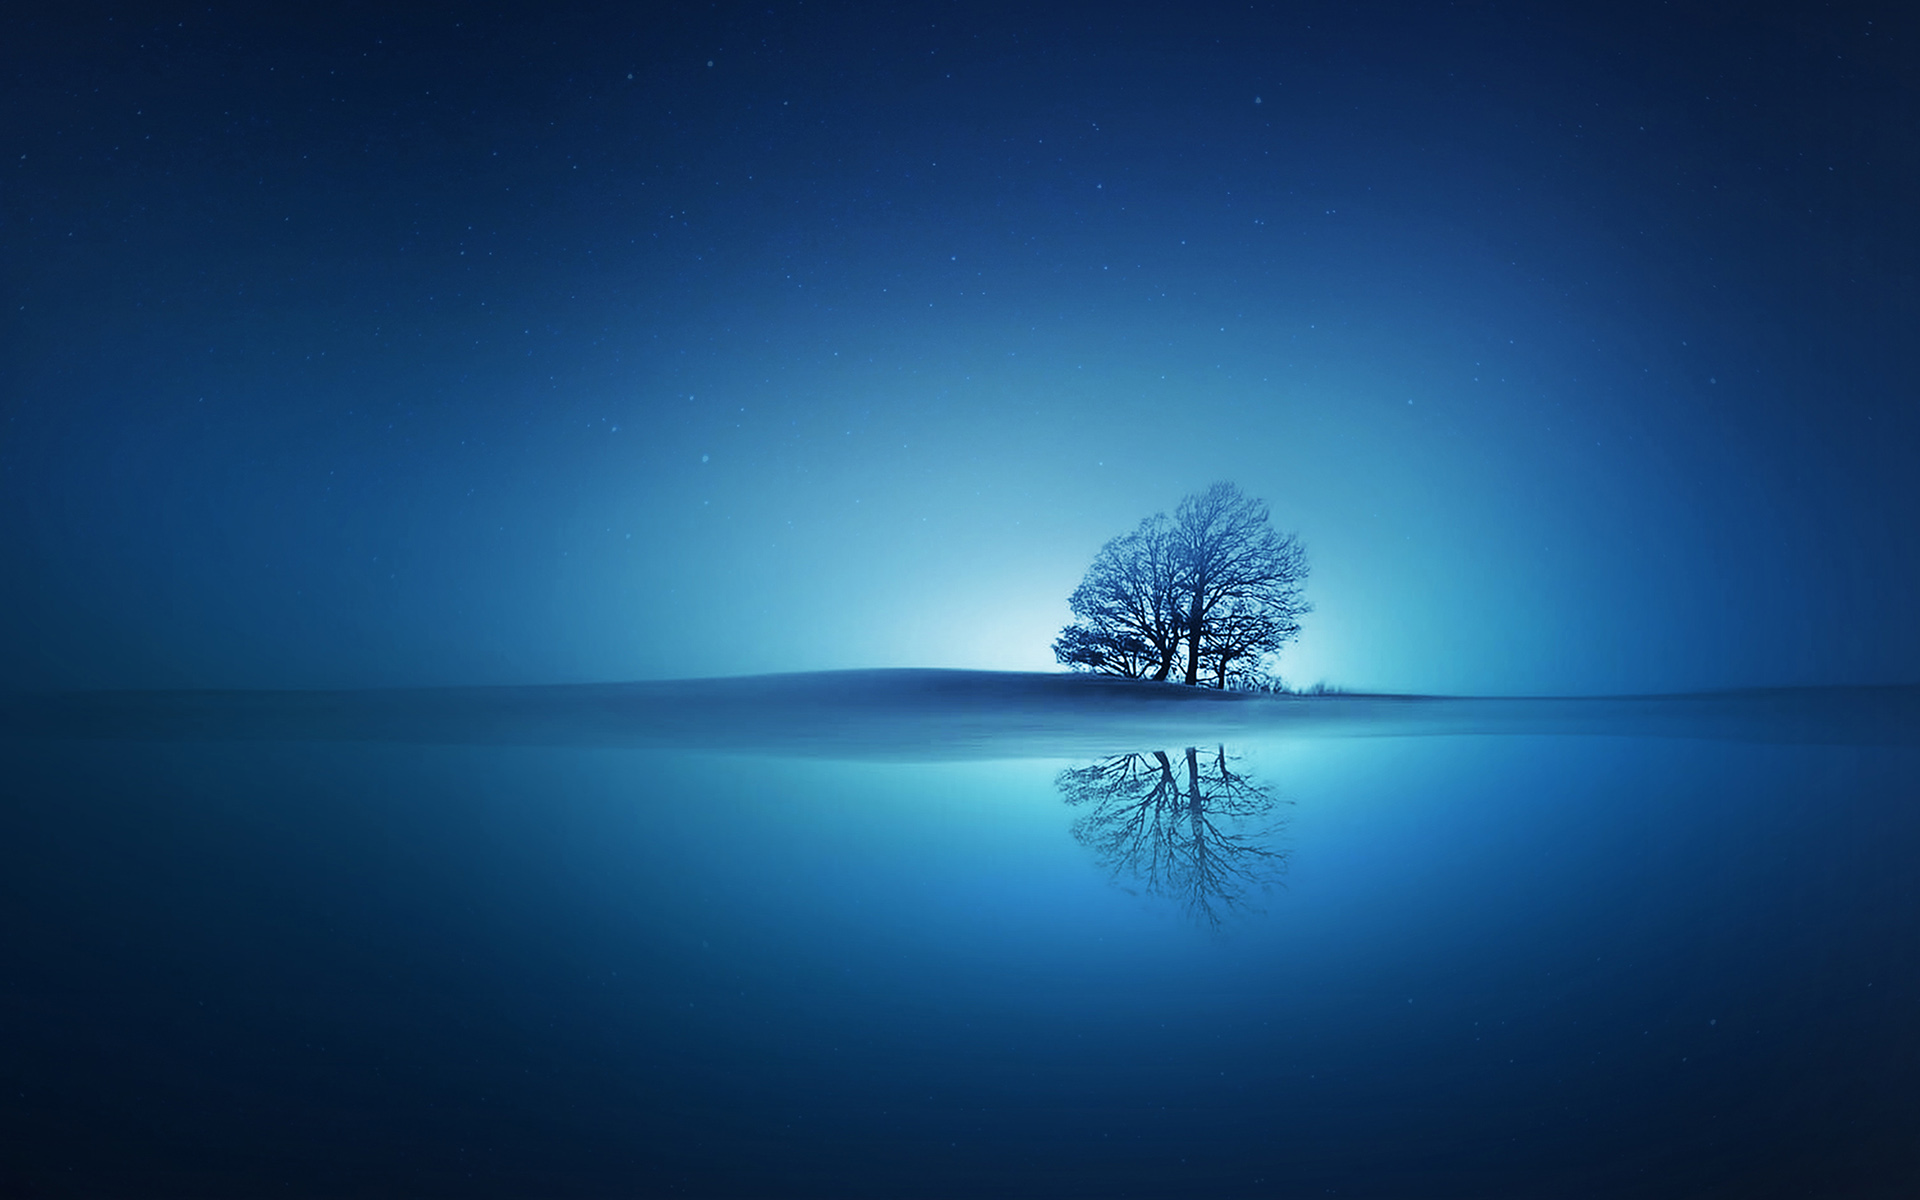 4K Blue Wallpapers High Quality | Download Free